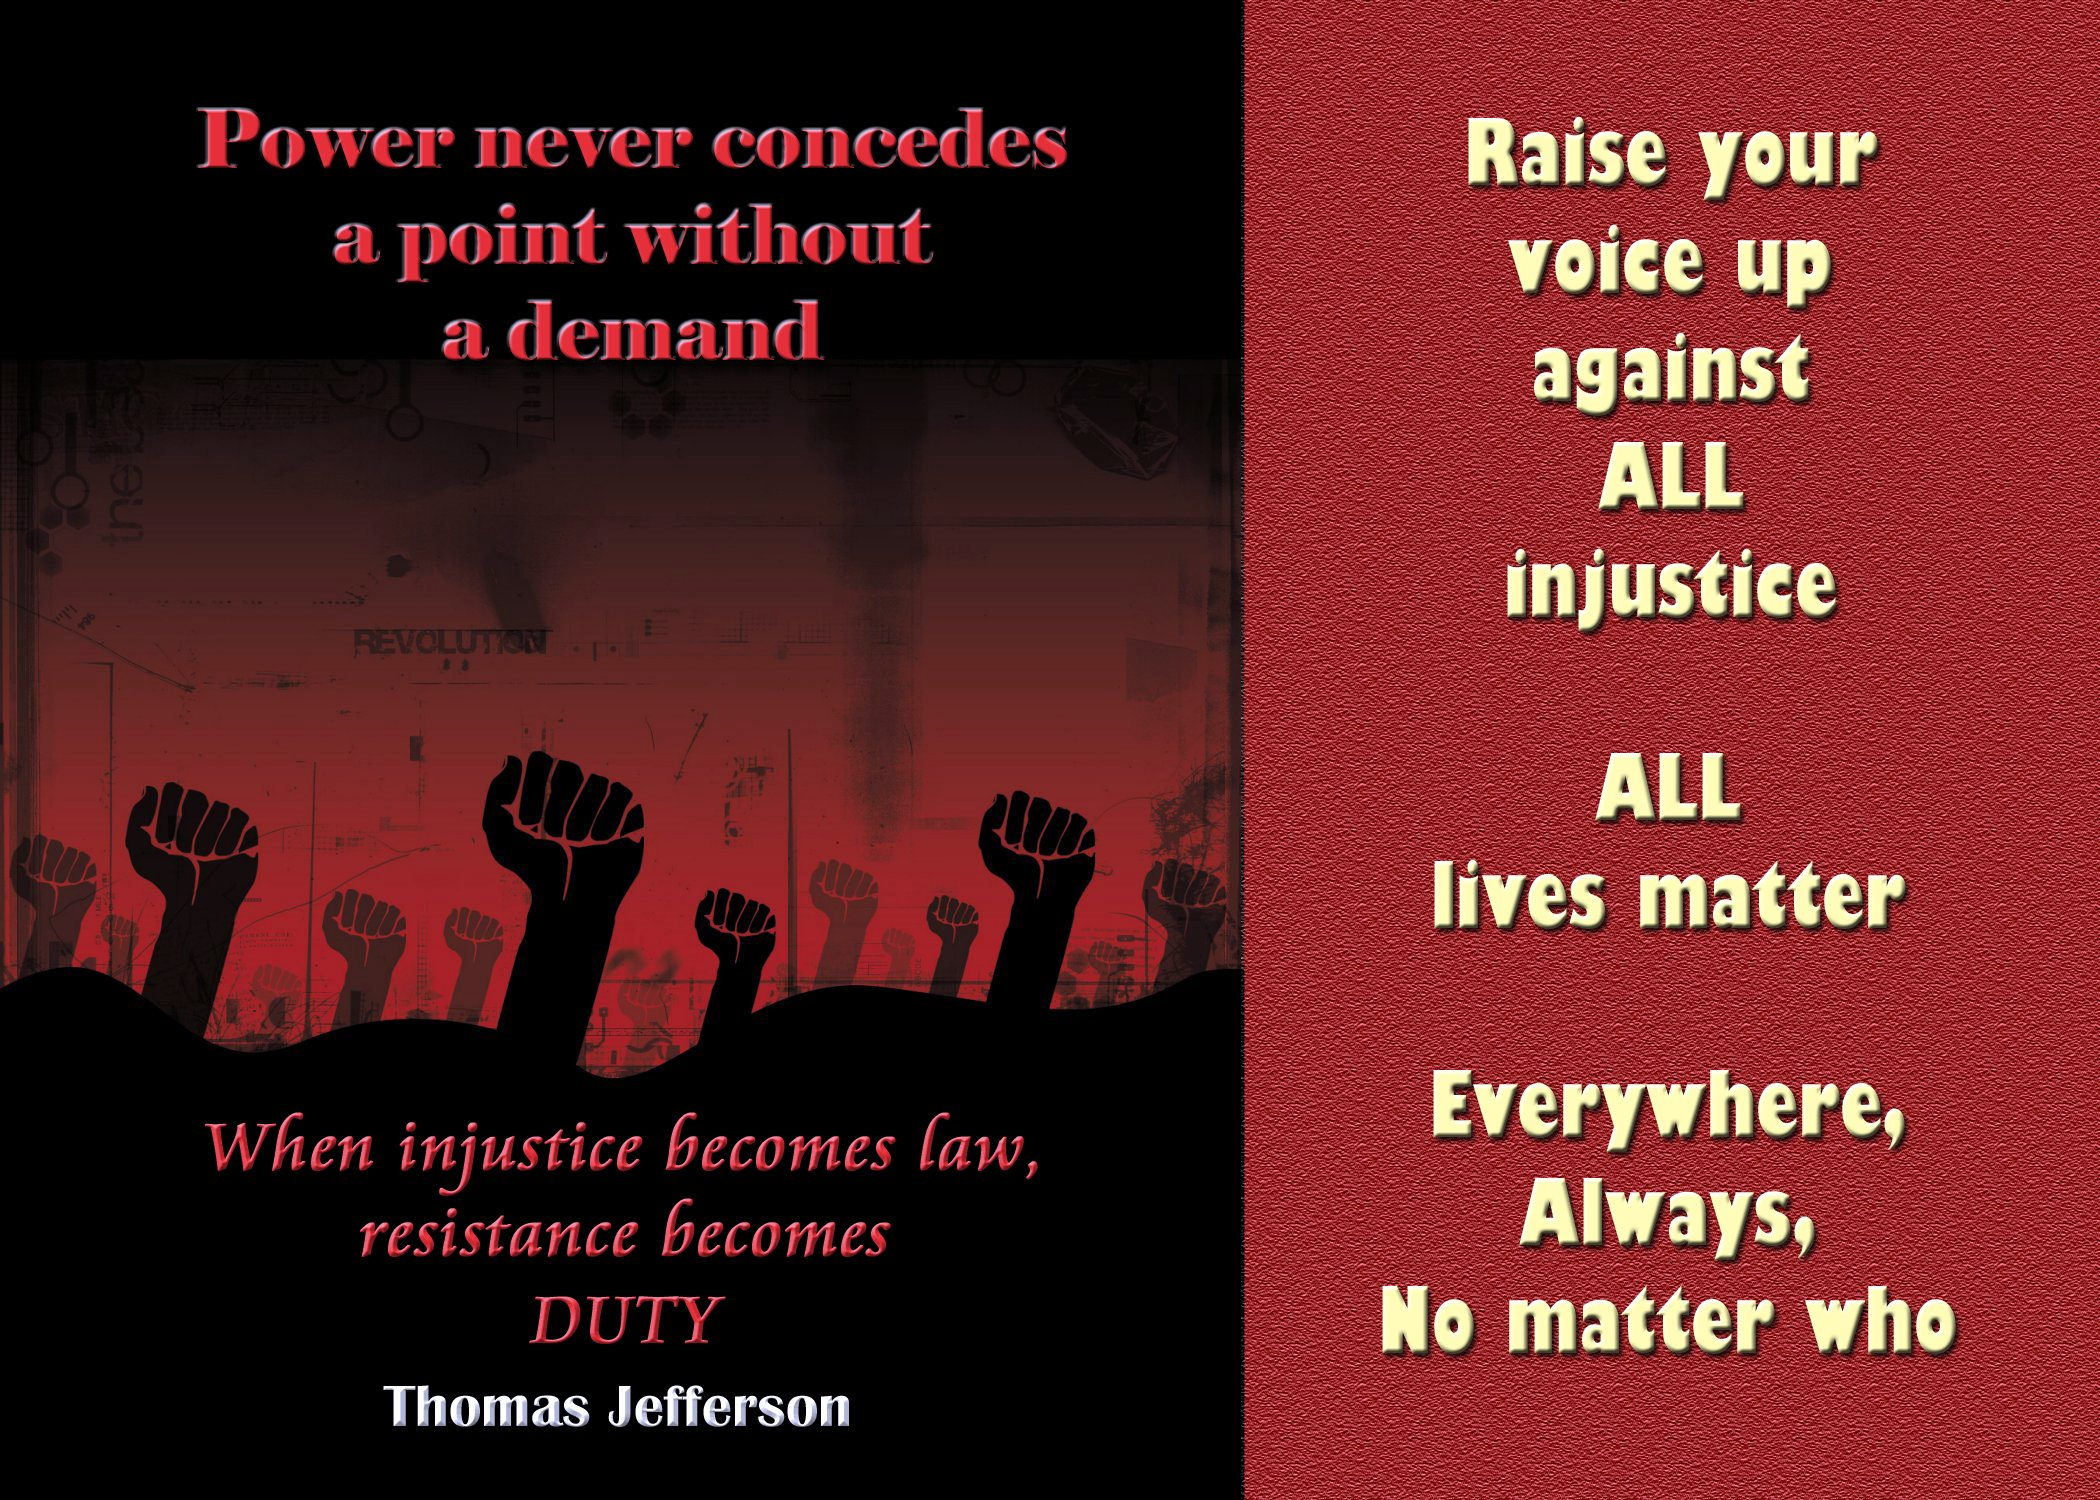 00 thomas jefferson resistance is duty 260316